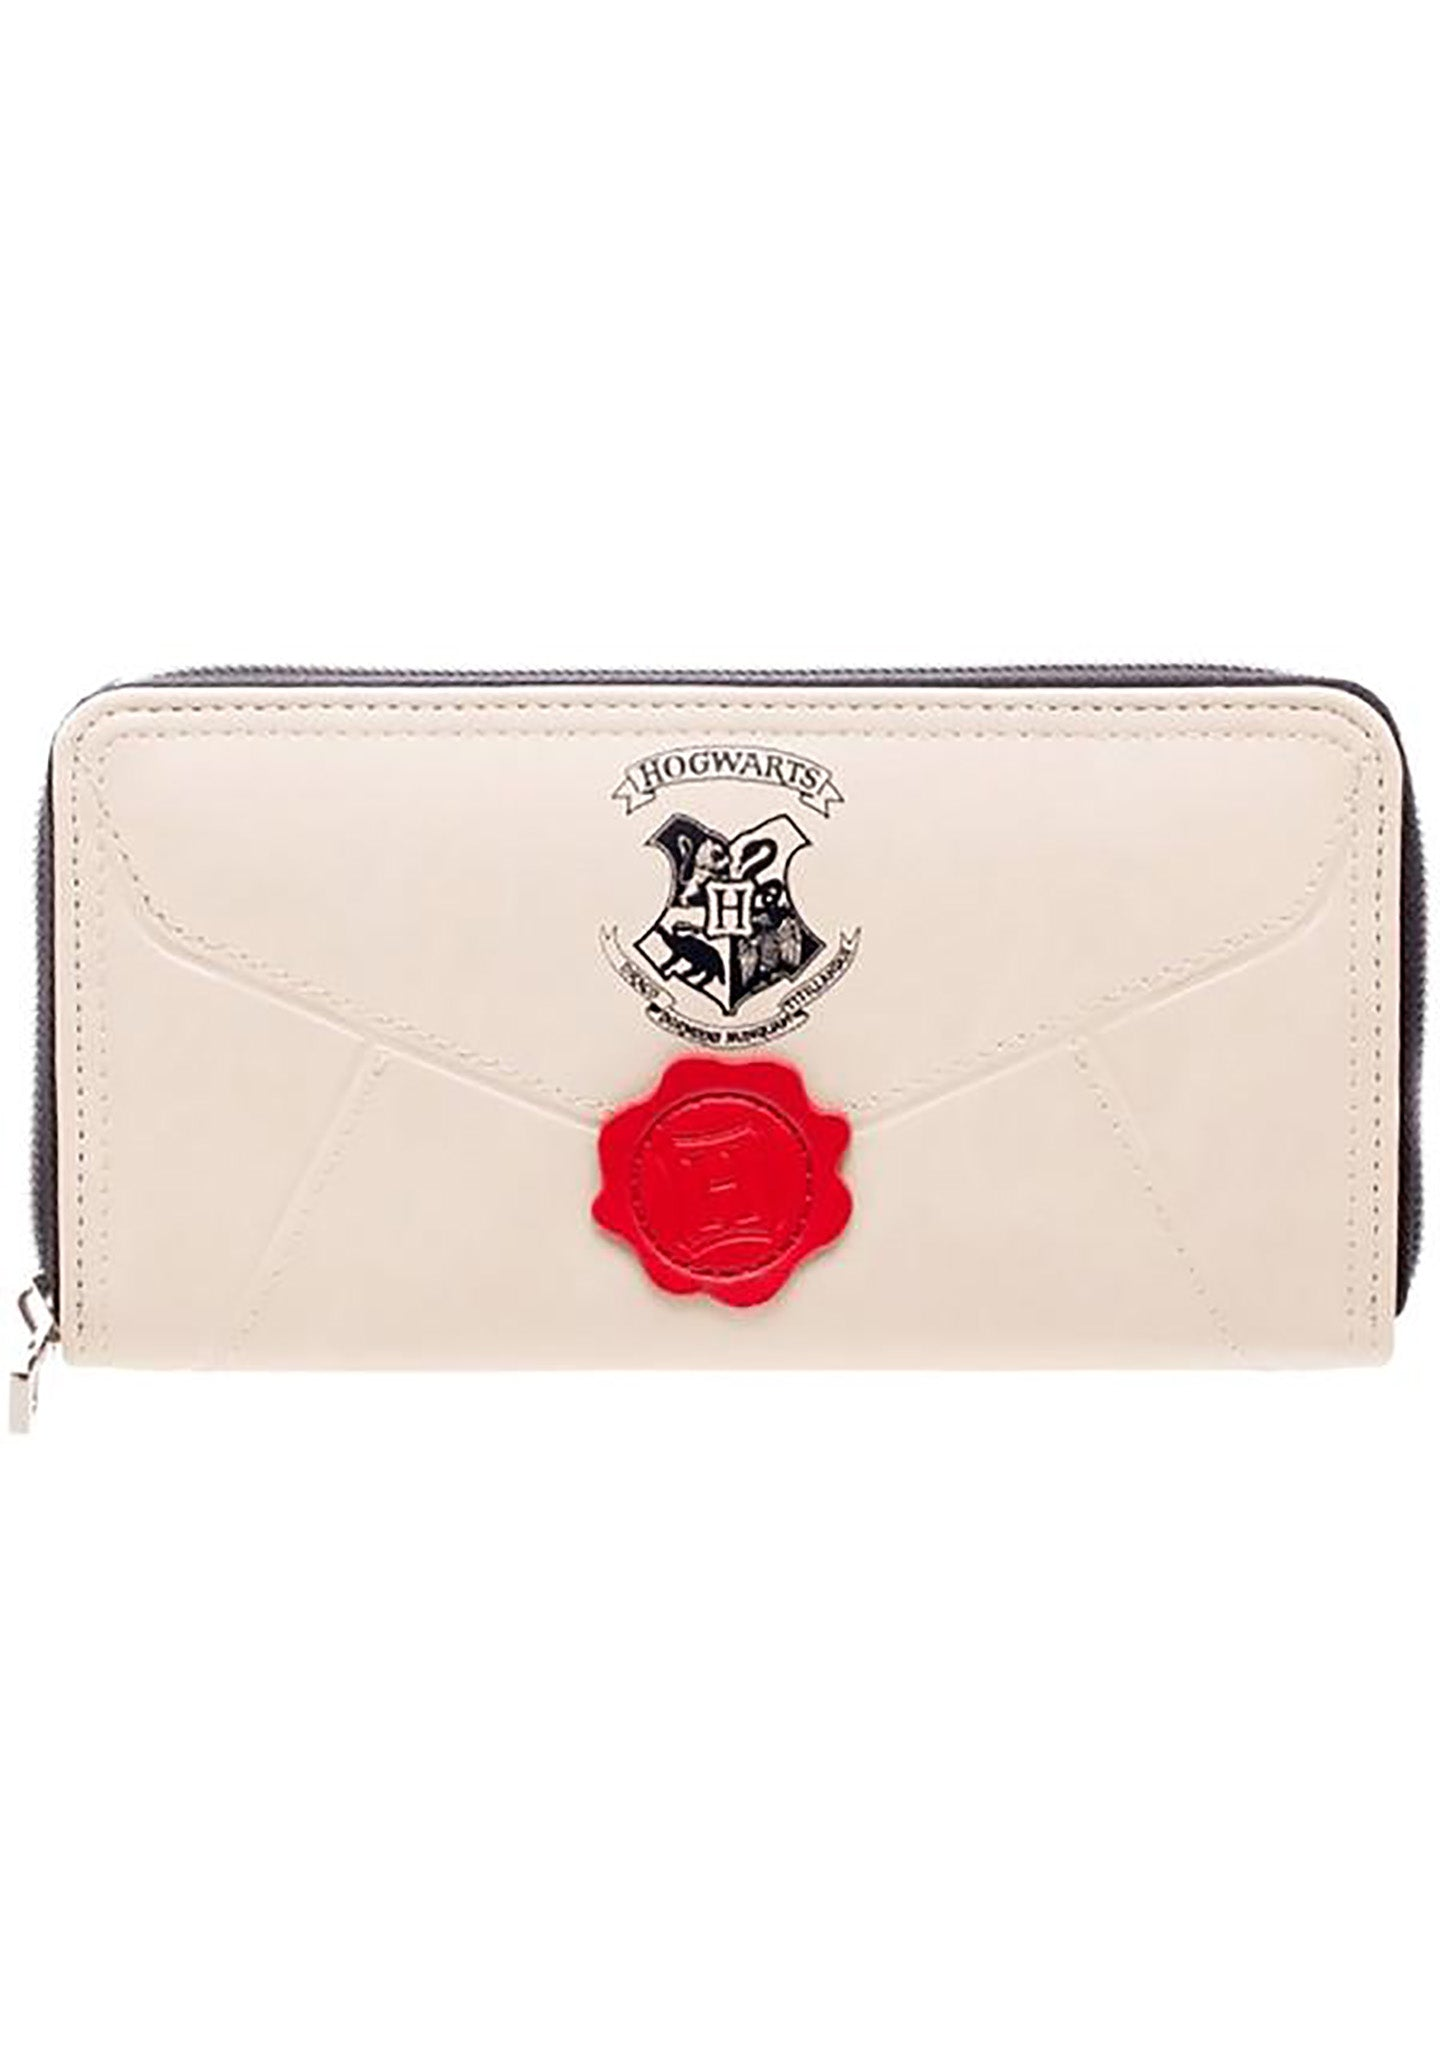 BIOWORLD X Harry Potter Envelope Zip Around Wallet